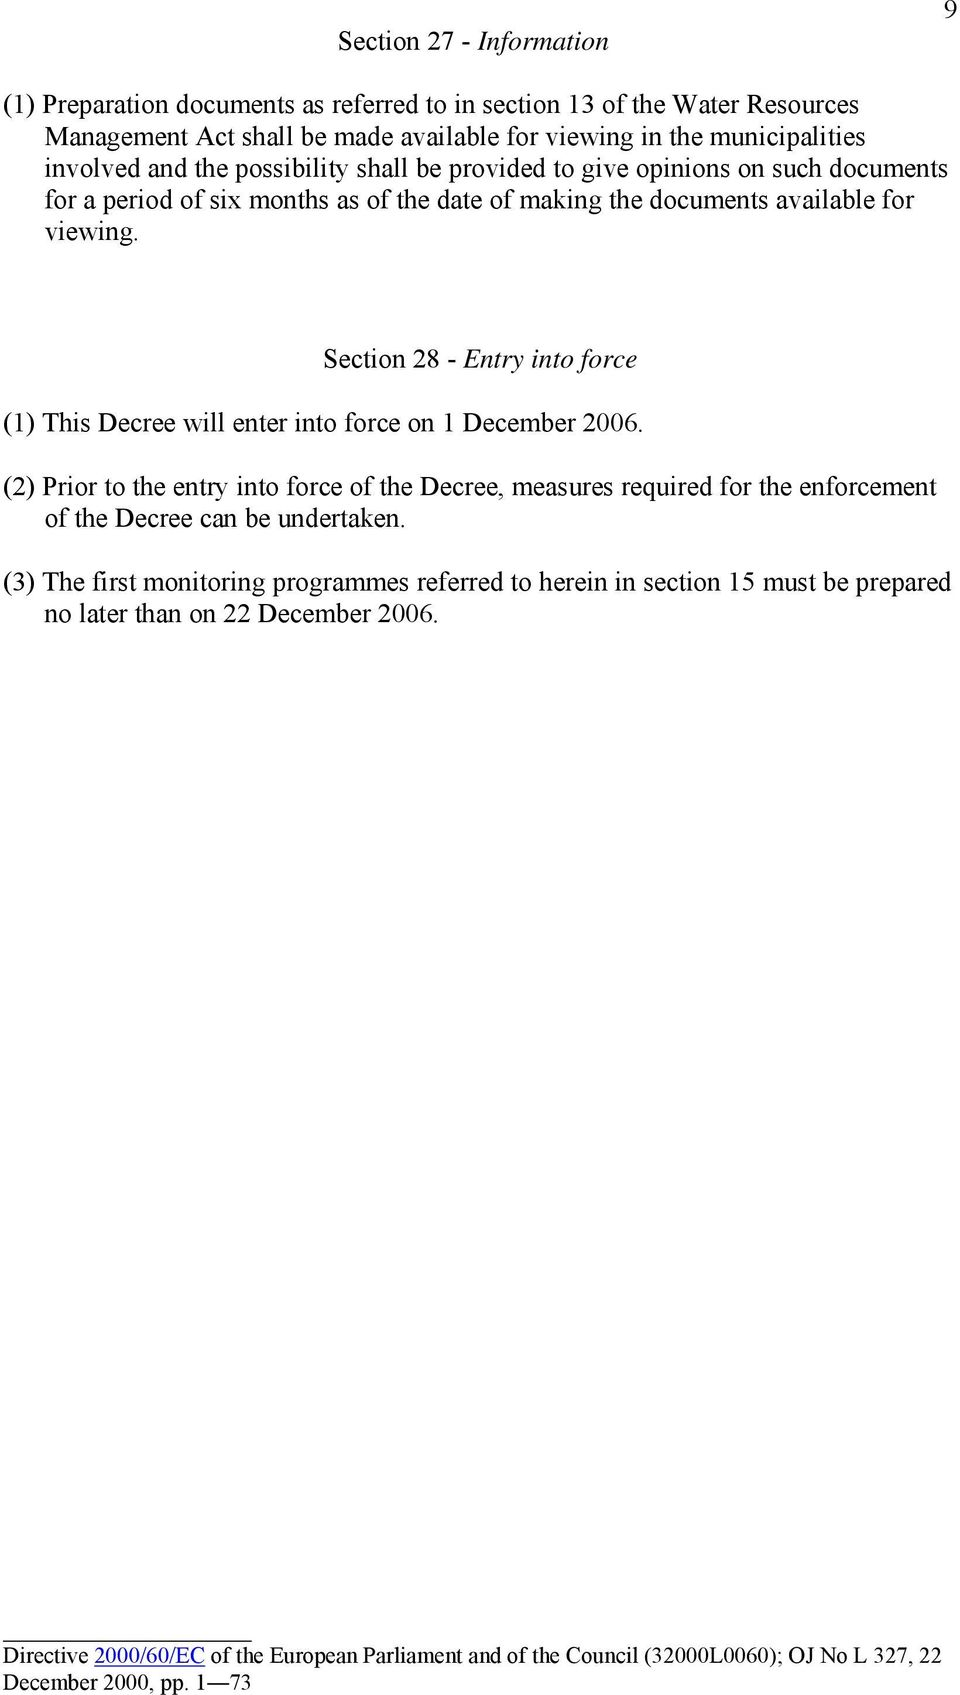 Section 28 - Entry into force (1) This Decree will enter into force on 1 December 2006.